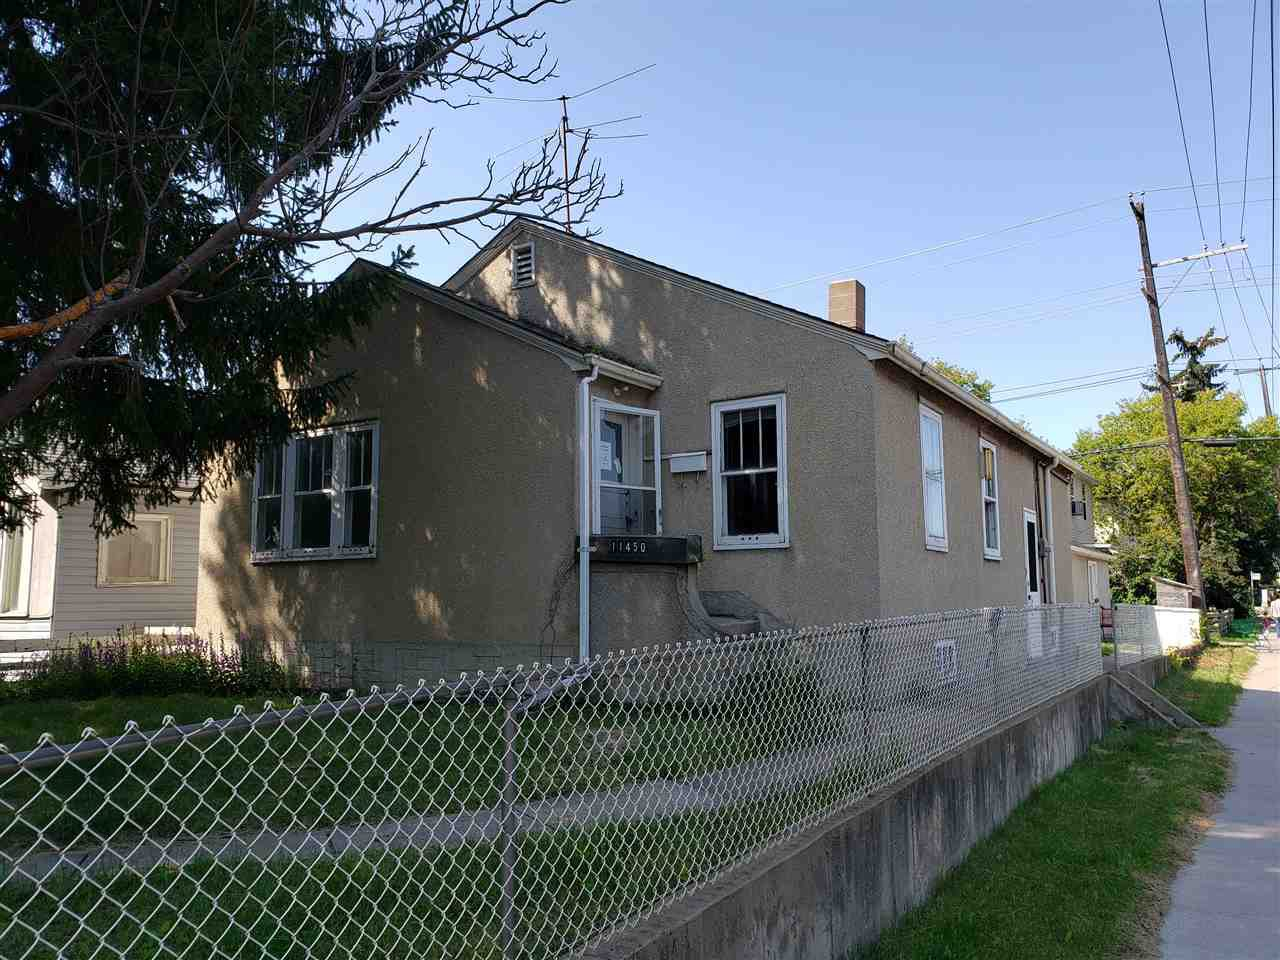 Main Photo: 11450 84 Street in Edmonton: Zone 05 House for sale : MLS®# E4170699